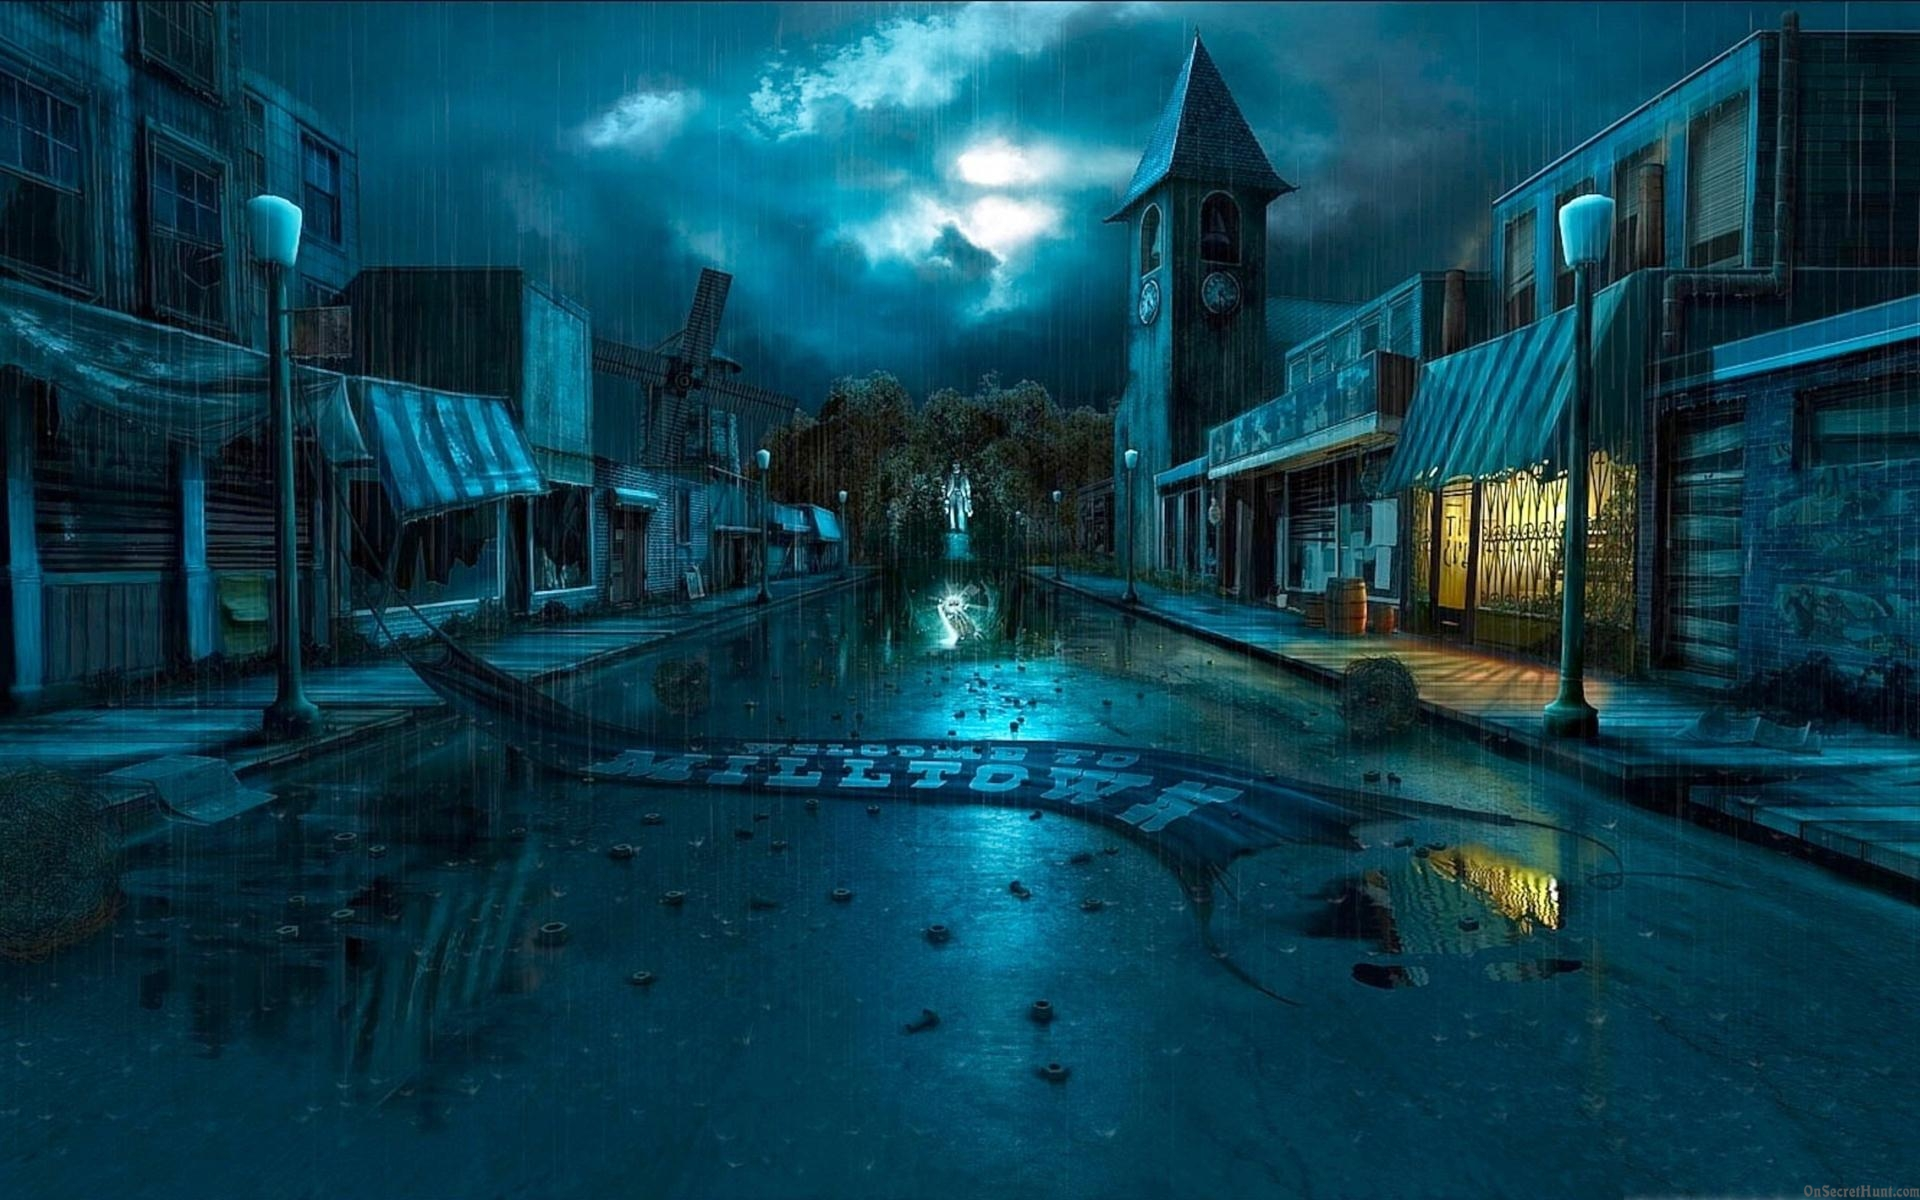 3d Wallpaper Custom Photo Hd Art Photography City: Fantasy City Wallpapers, Pictures, Images